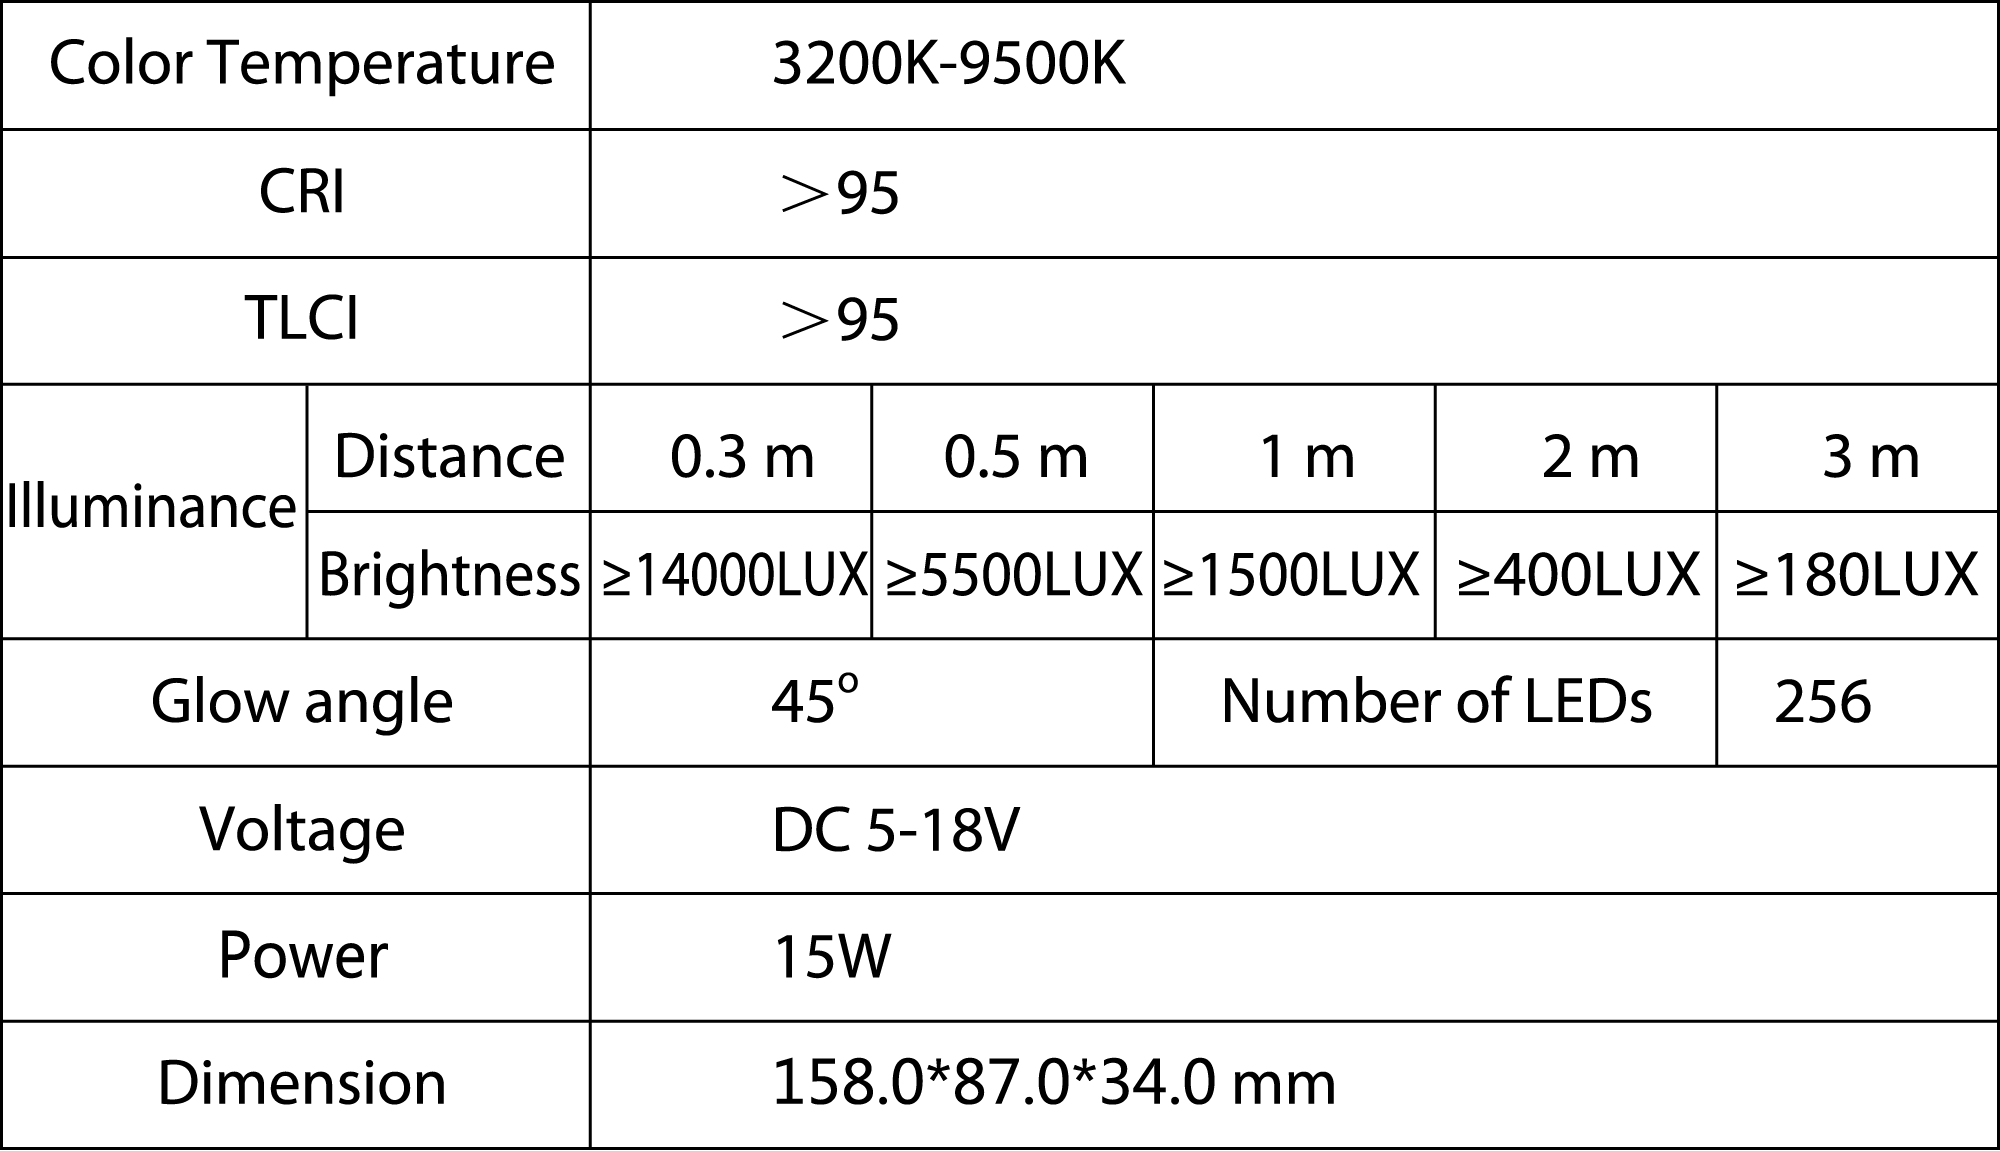 al-f7-specifications.png